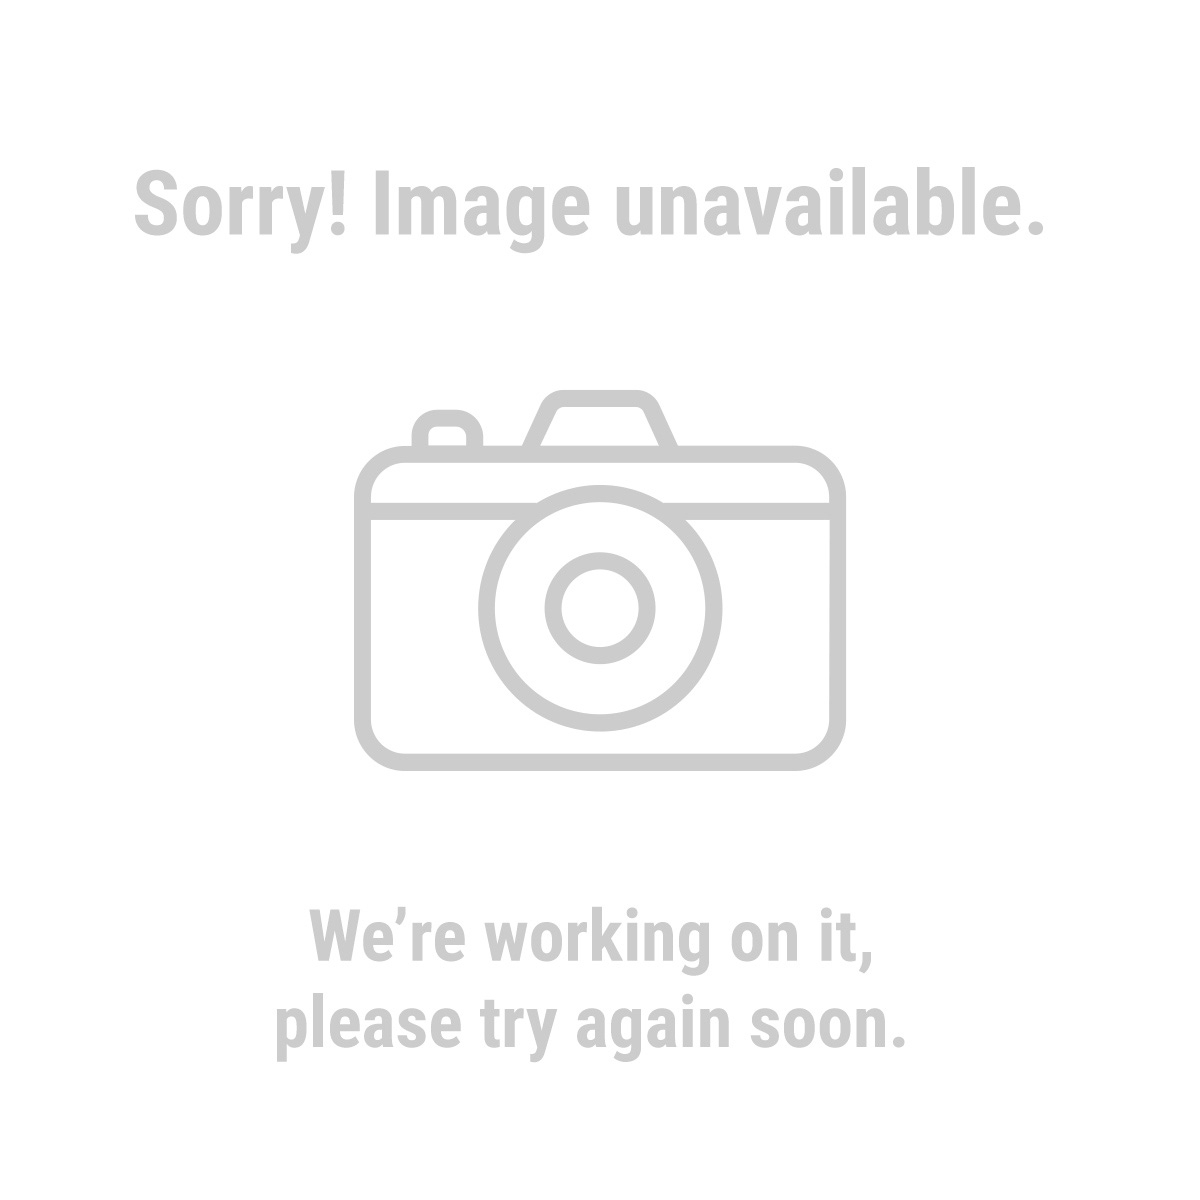 "HFT 60453 29 ft. 4"" x 59 ft. Reflective Heavy Duty Silver Tarp"